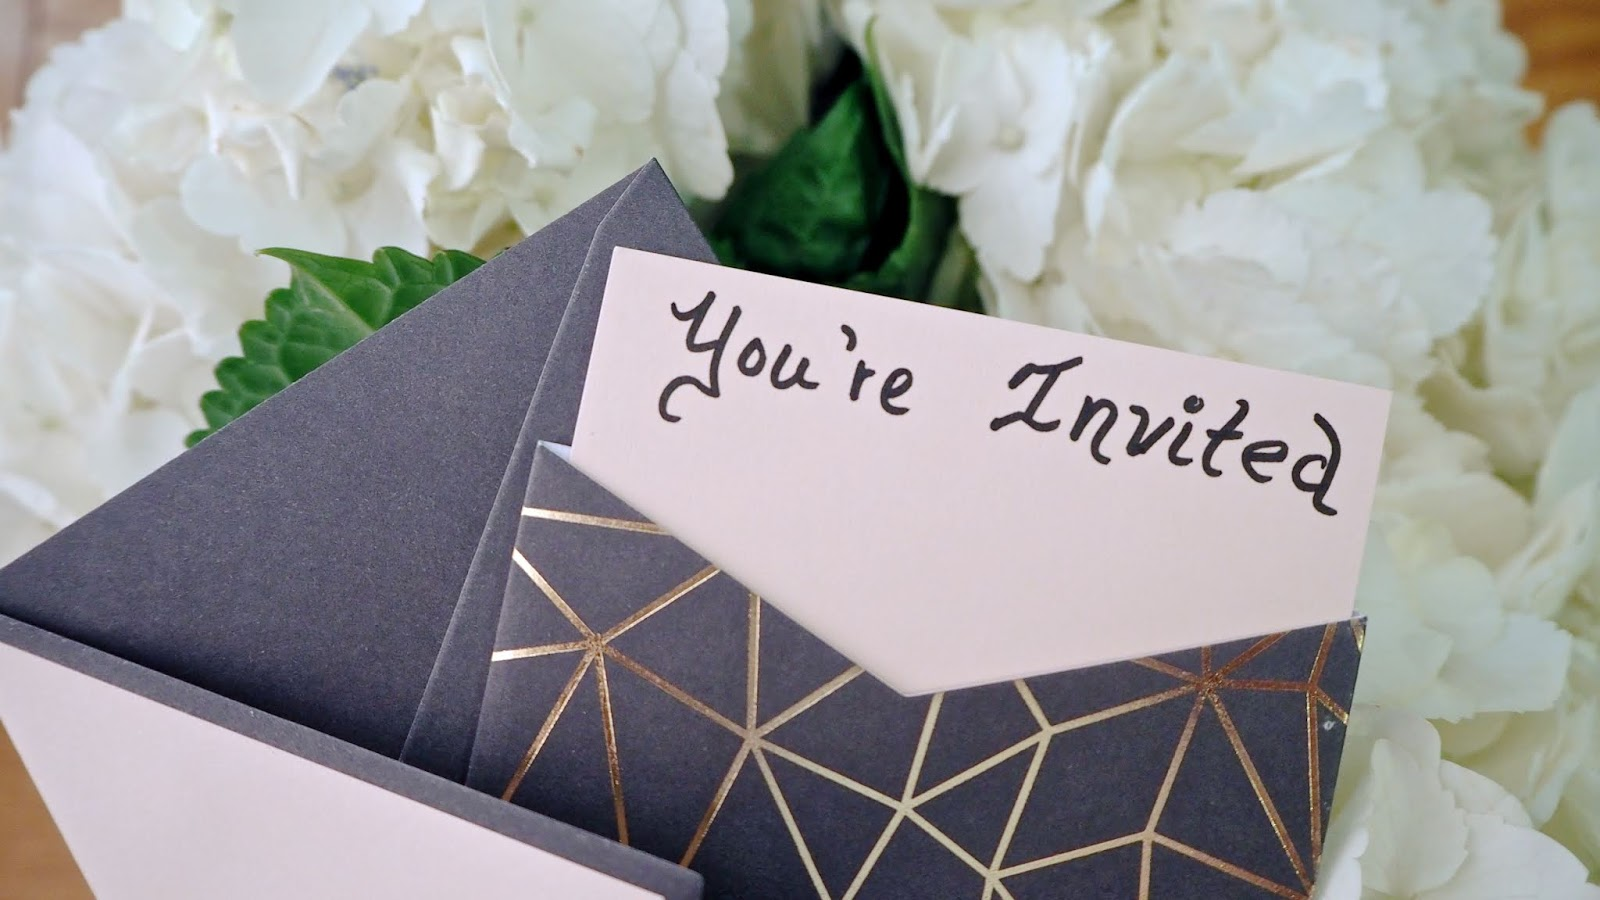 Invitation and white hydrangeas